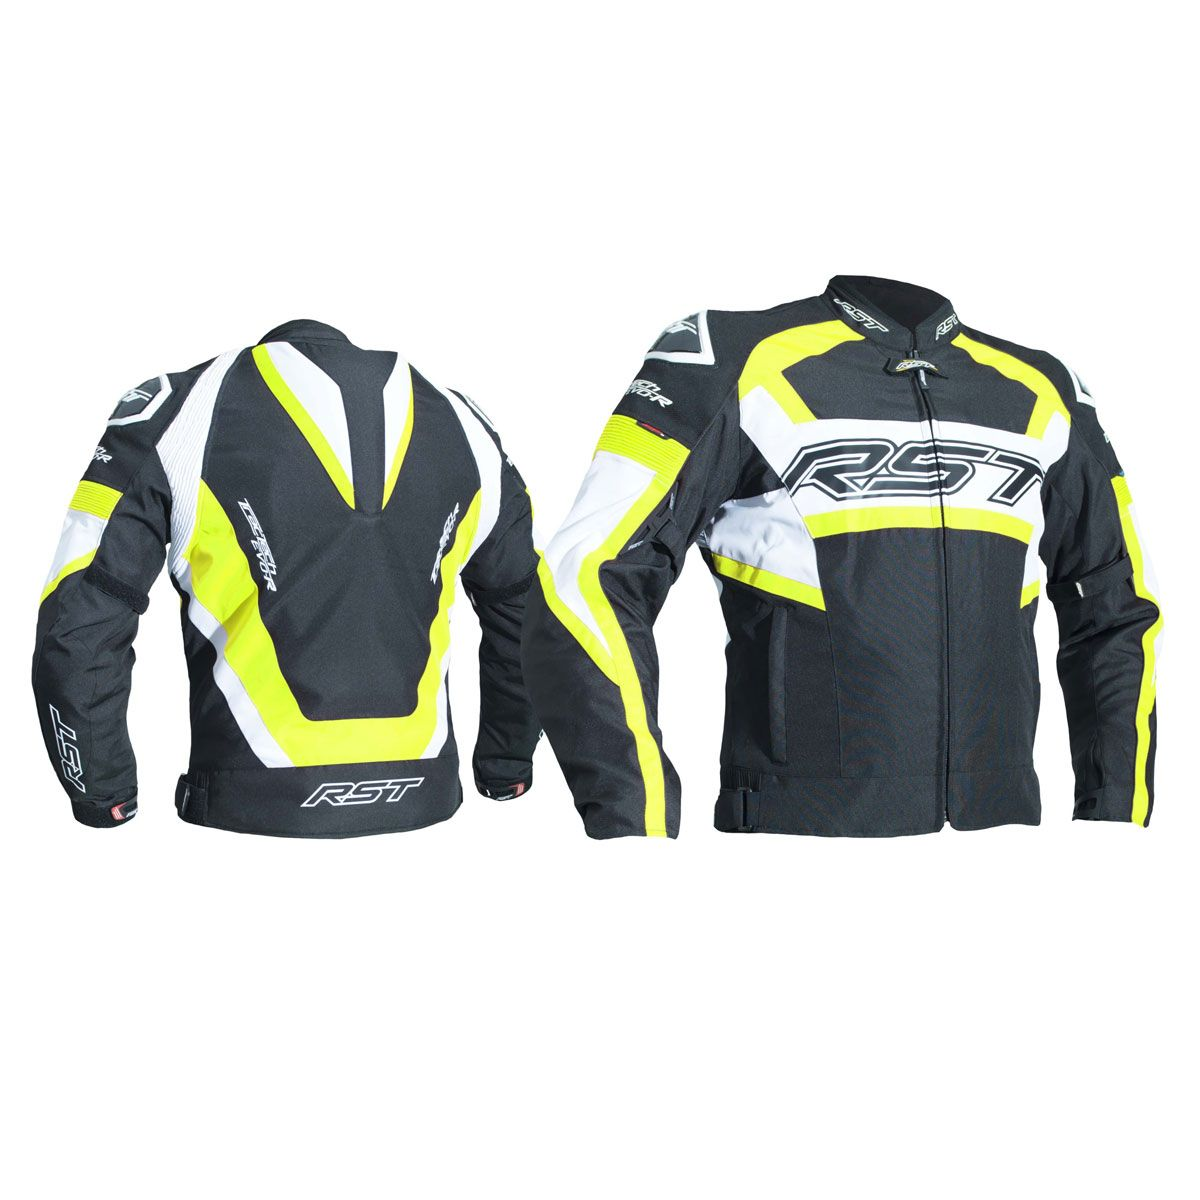 RST Tractech Evo R CE Textile Jacket Black / Fluo Yellow